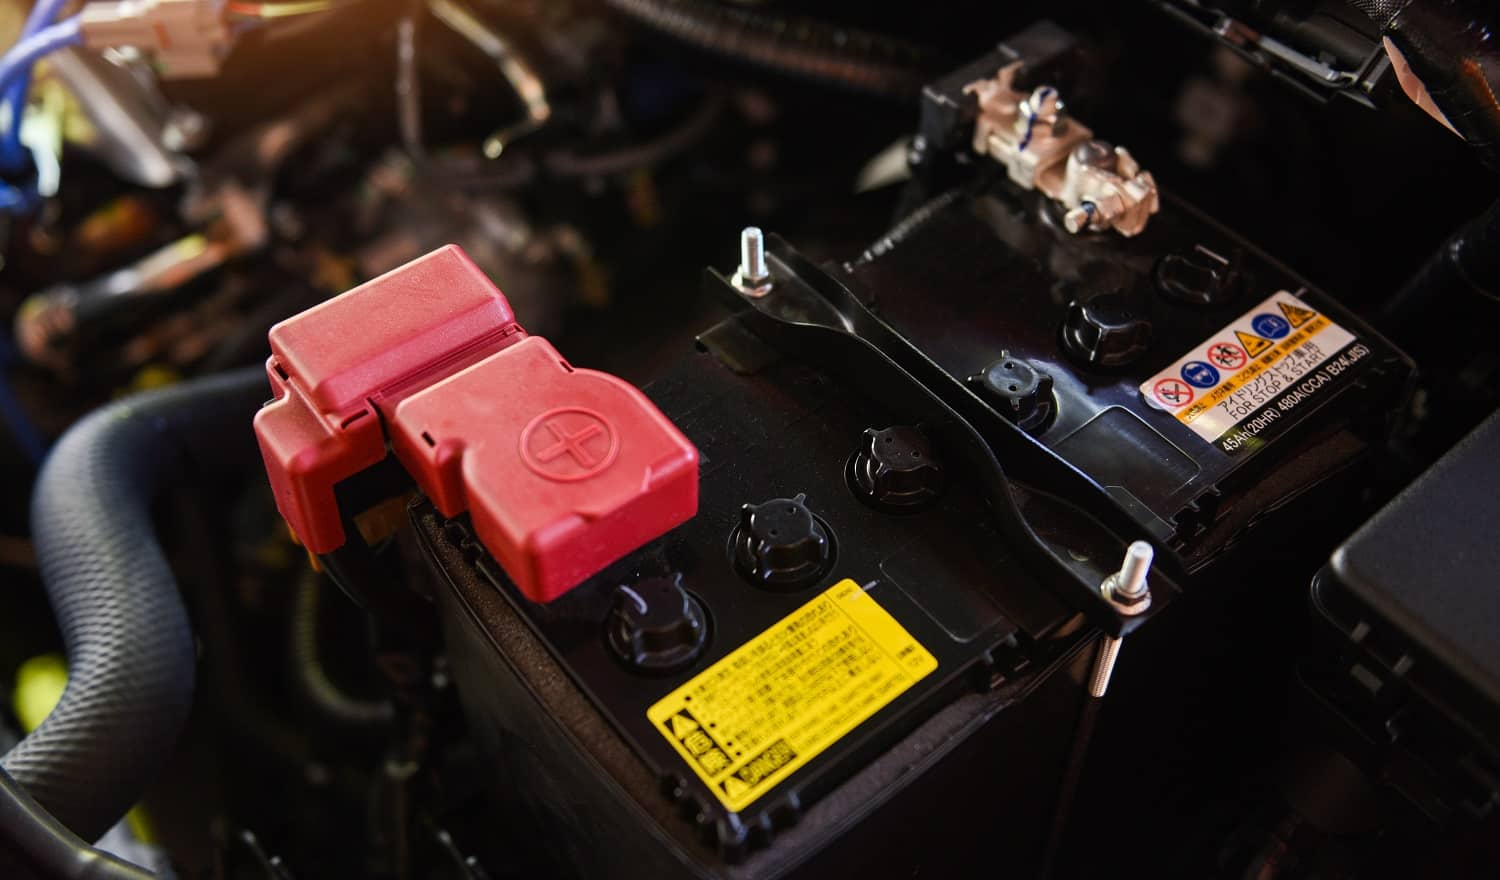 closeup new battery car in engine room / mechanic car battery